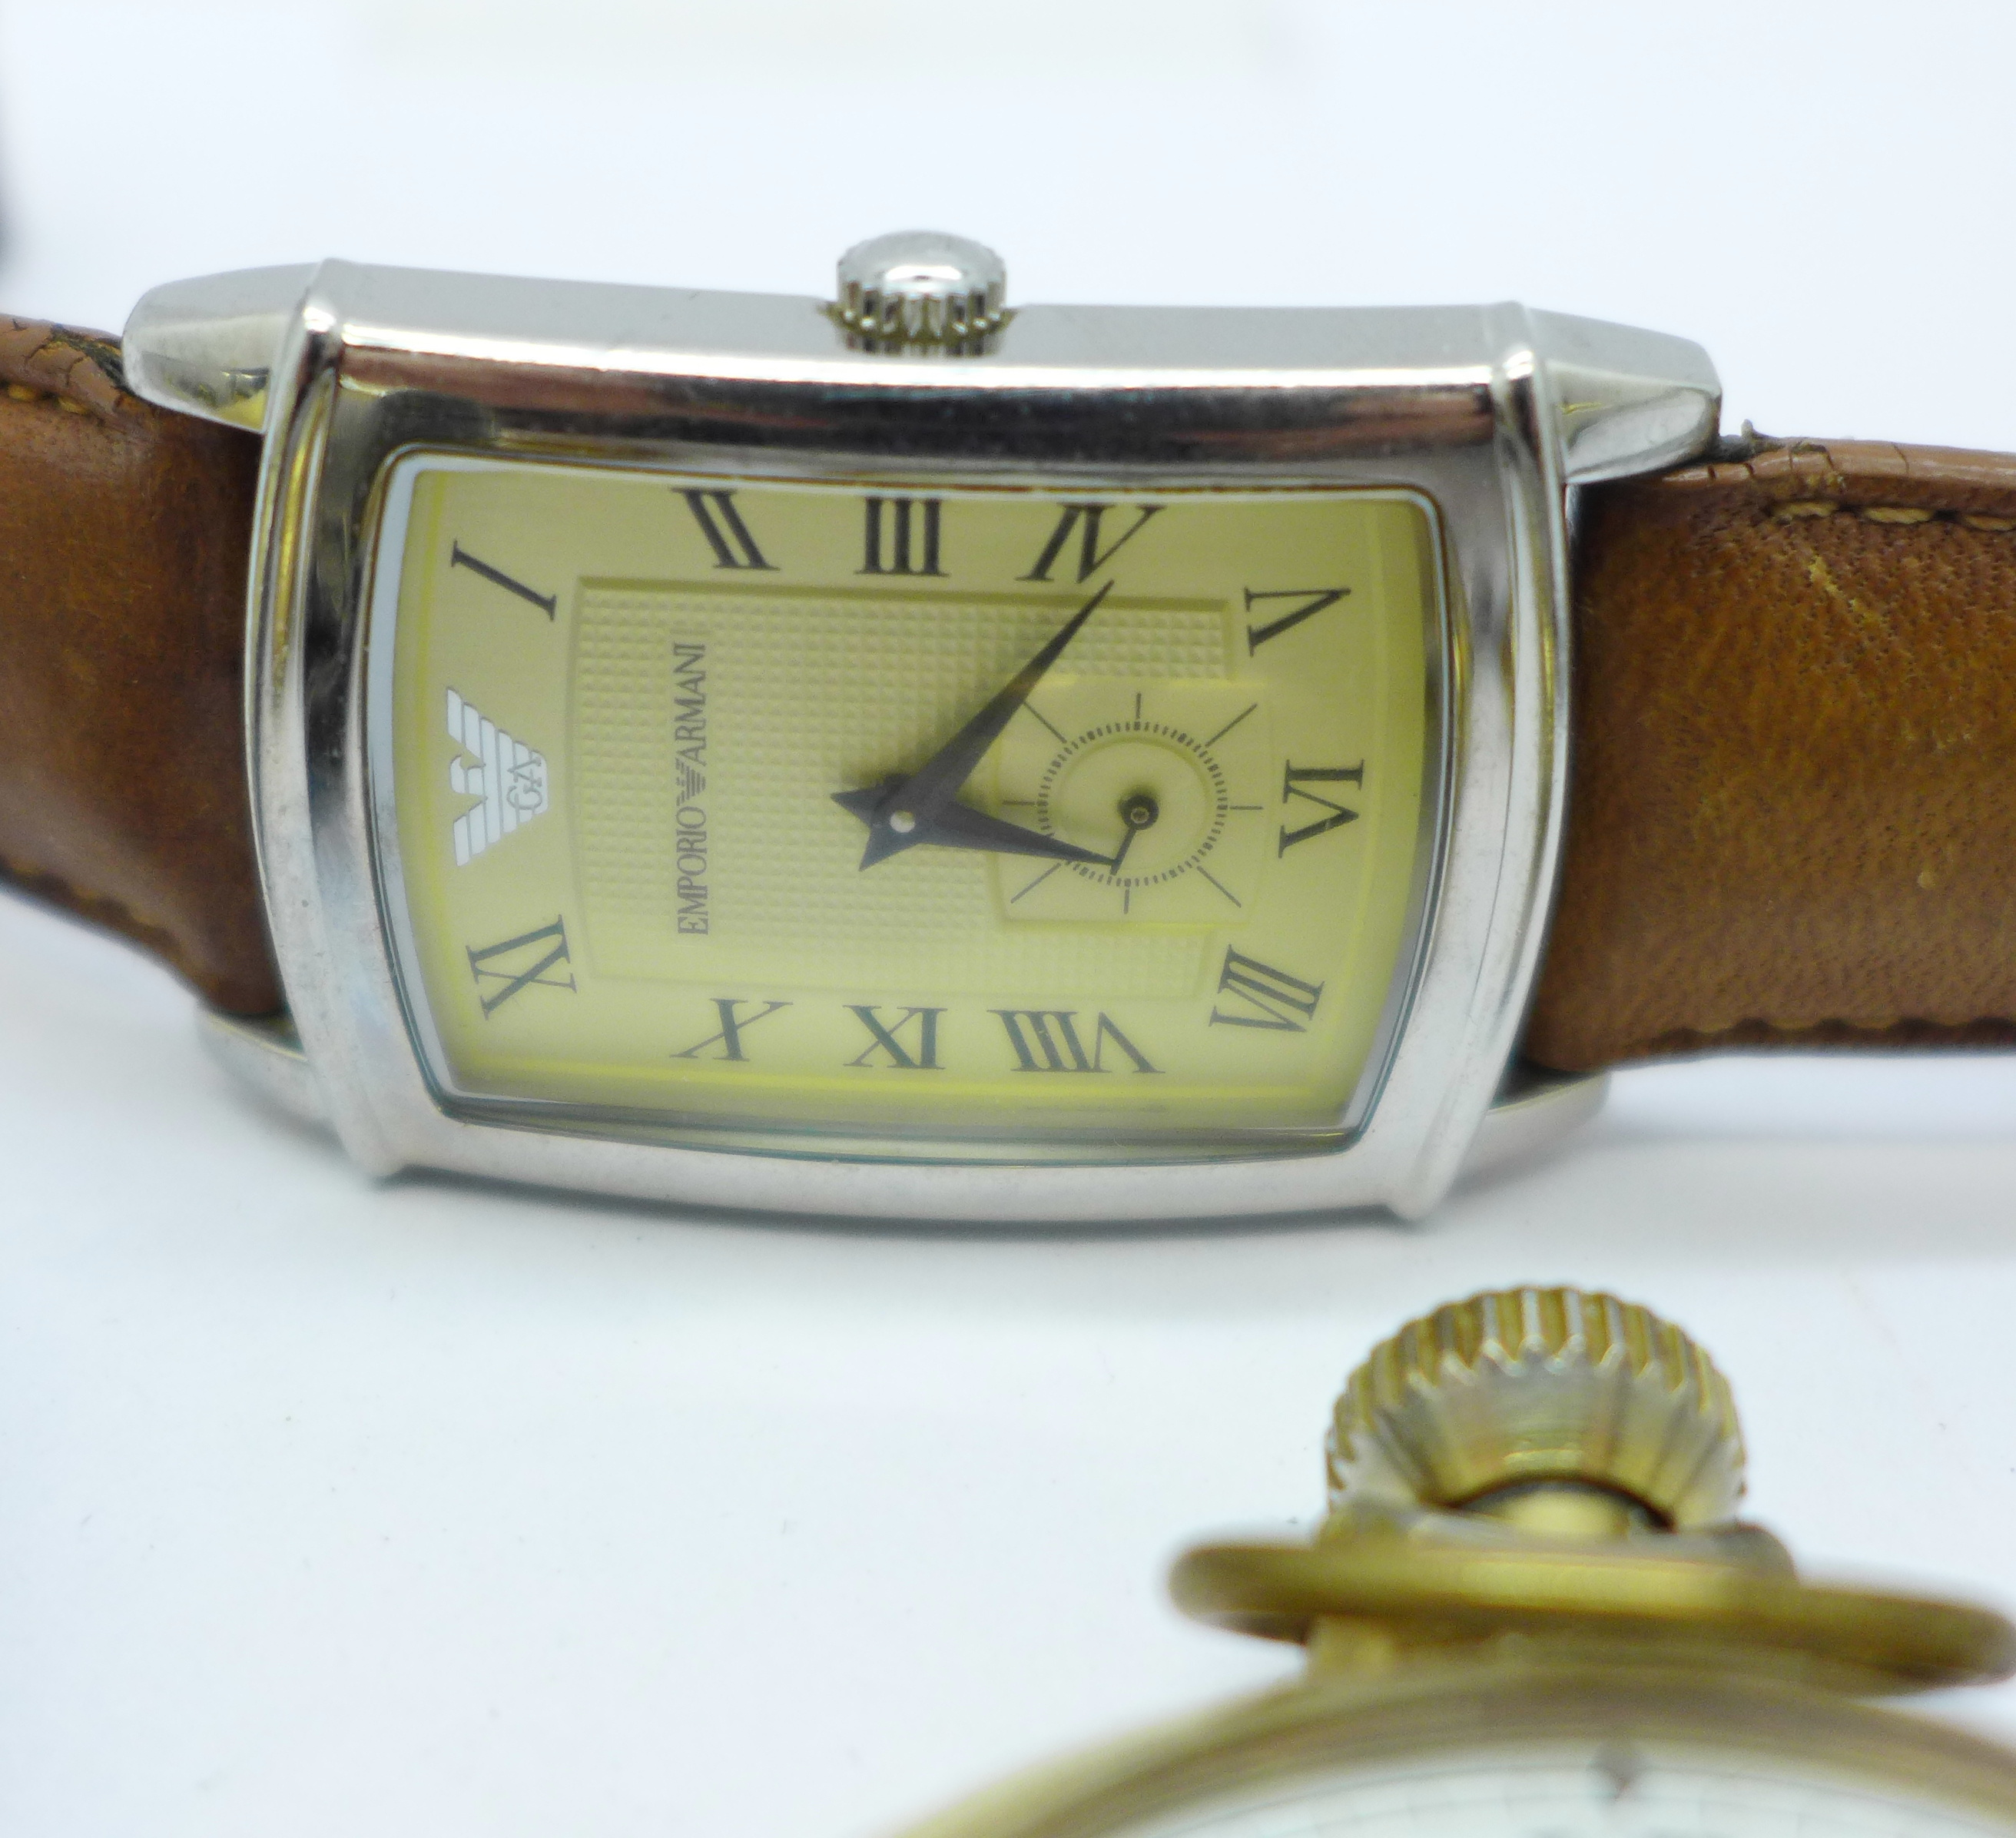 A collection of watches and a pocket watch including Seiko, Avia, Citizen, Emporio Armani and Smiths - Image 3 of 5